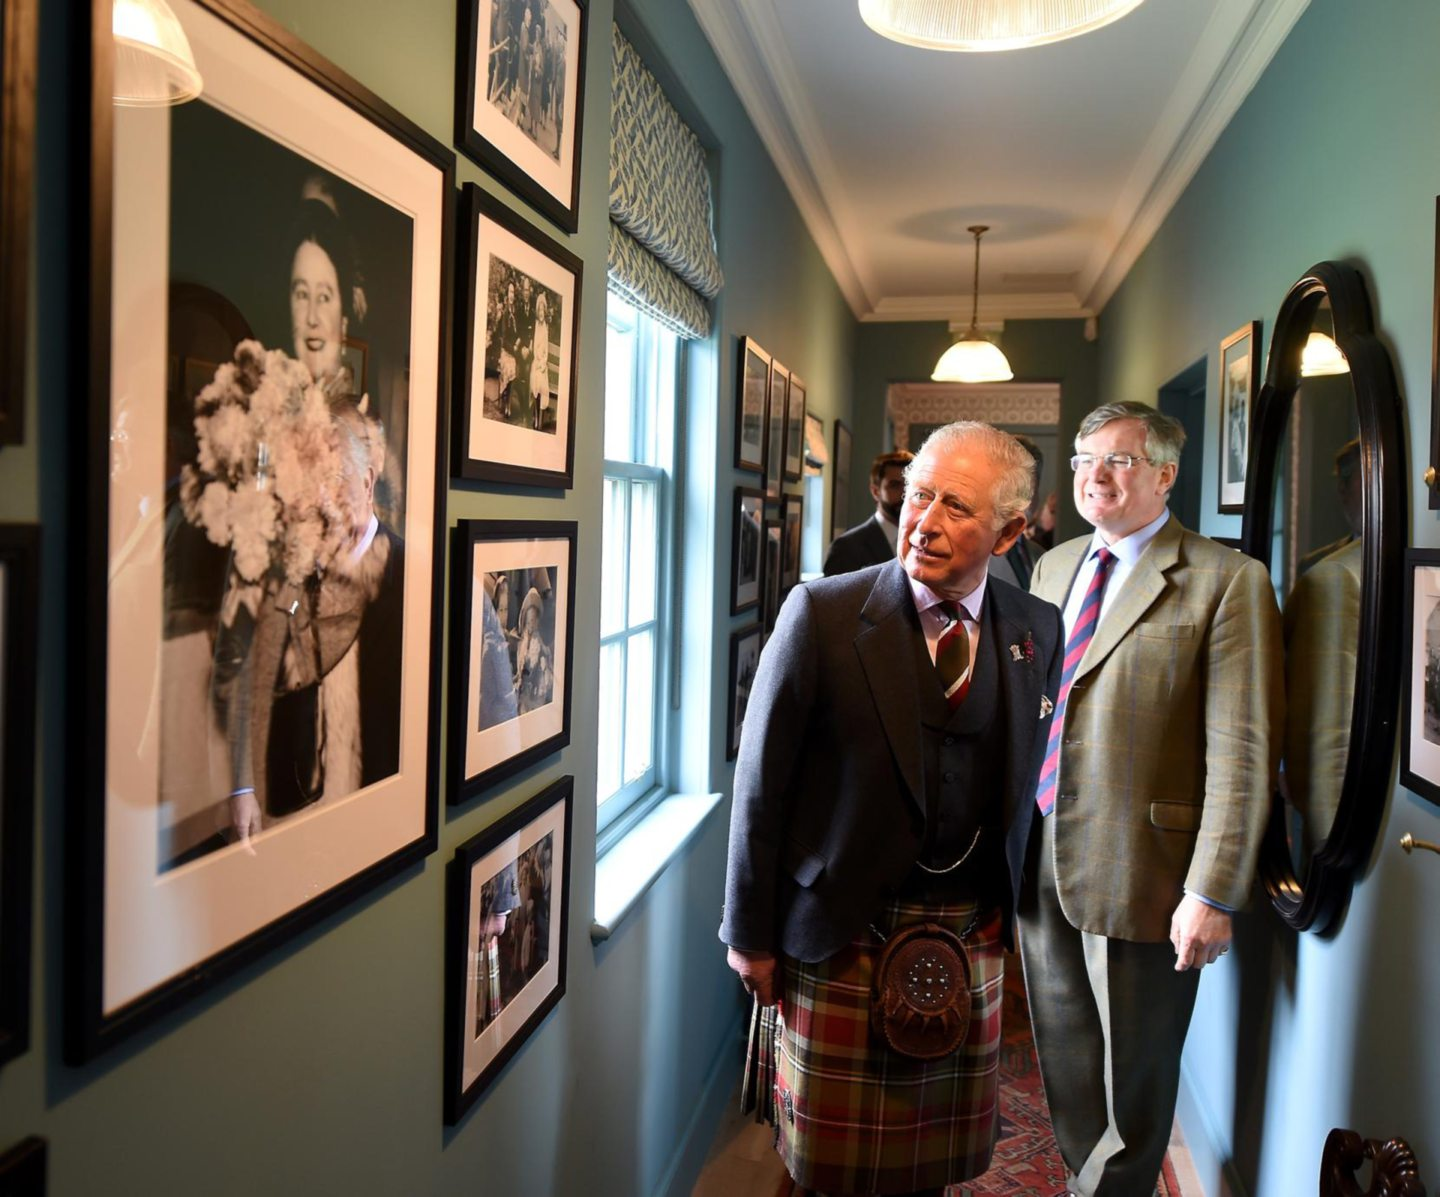 HRH The Duke of Rothesay, Prince Charles toured and opened the new 'Granary Lodge' bed and breakfast in the grounds of Castle of Mey in Caithness. Pictures by Sandy McCook.